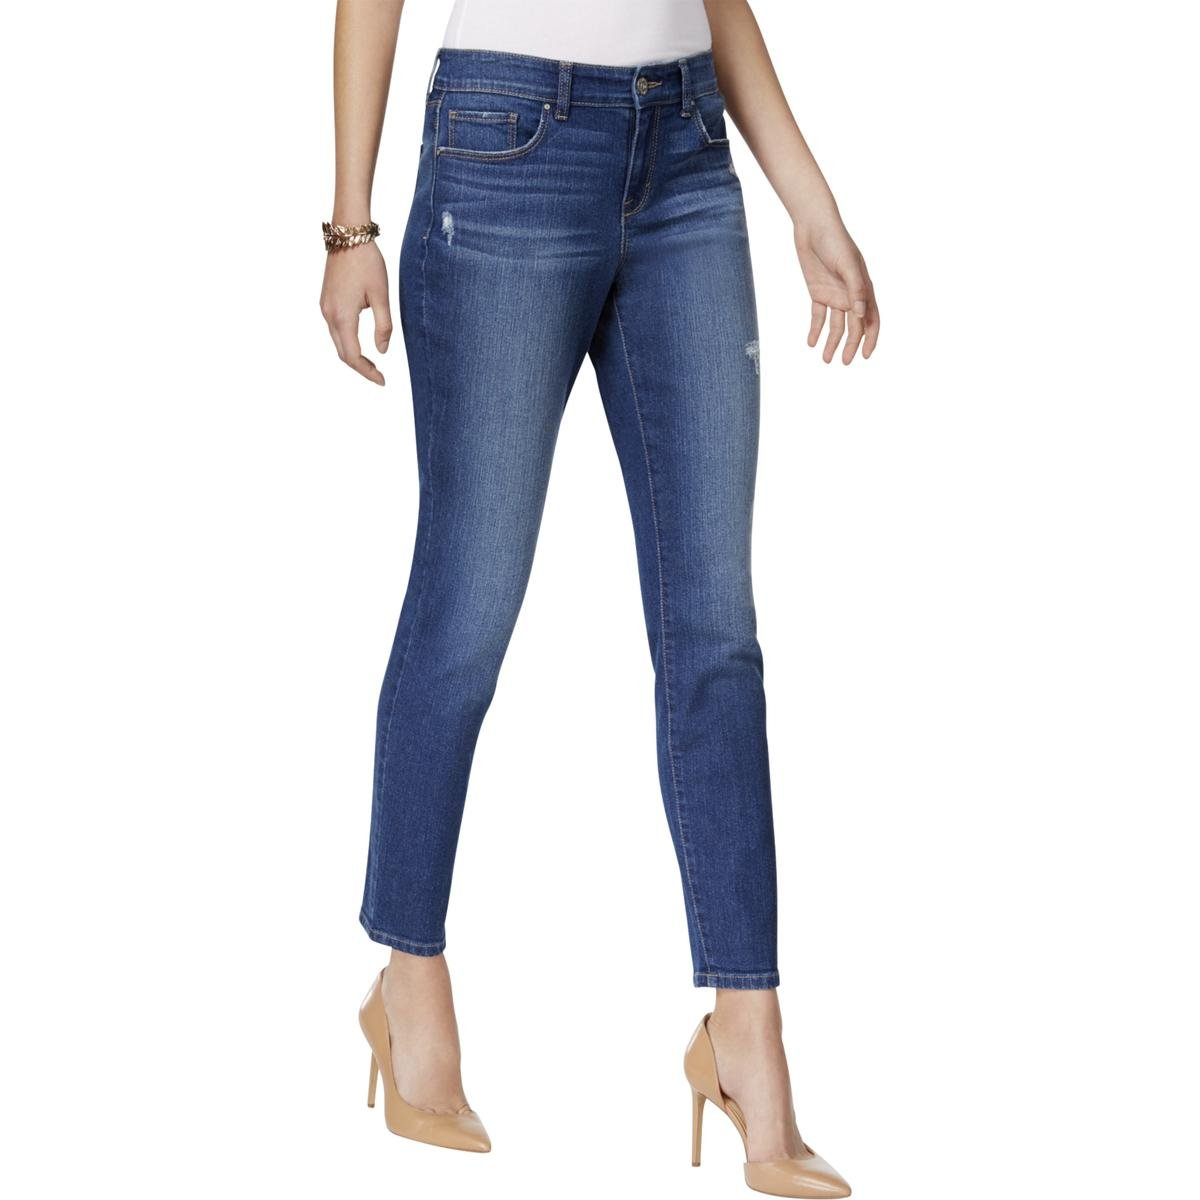 Style & Co. Womens Skinny Mid Rise Ankle Jeans Blue 16